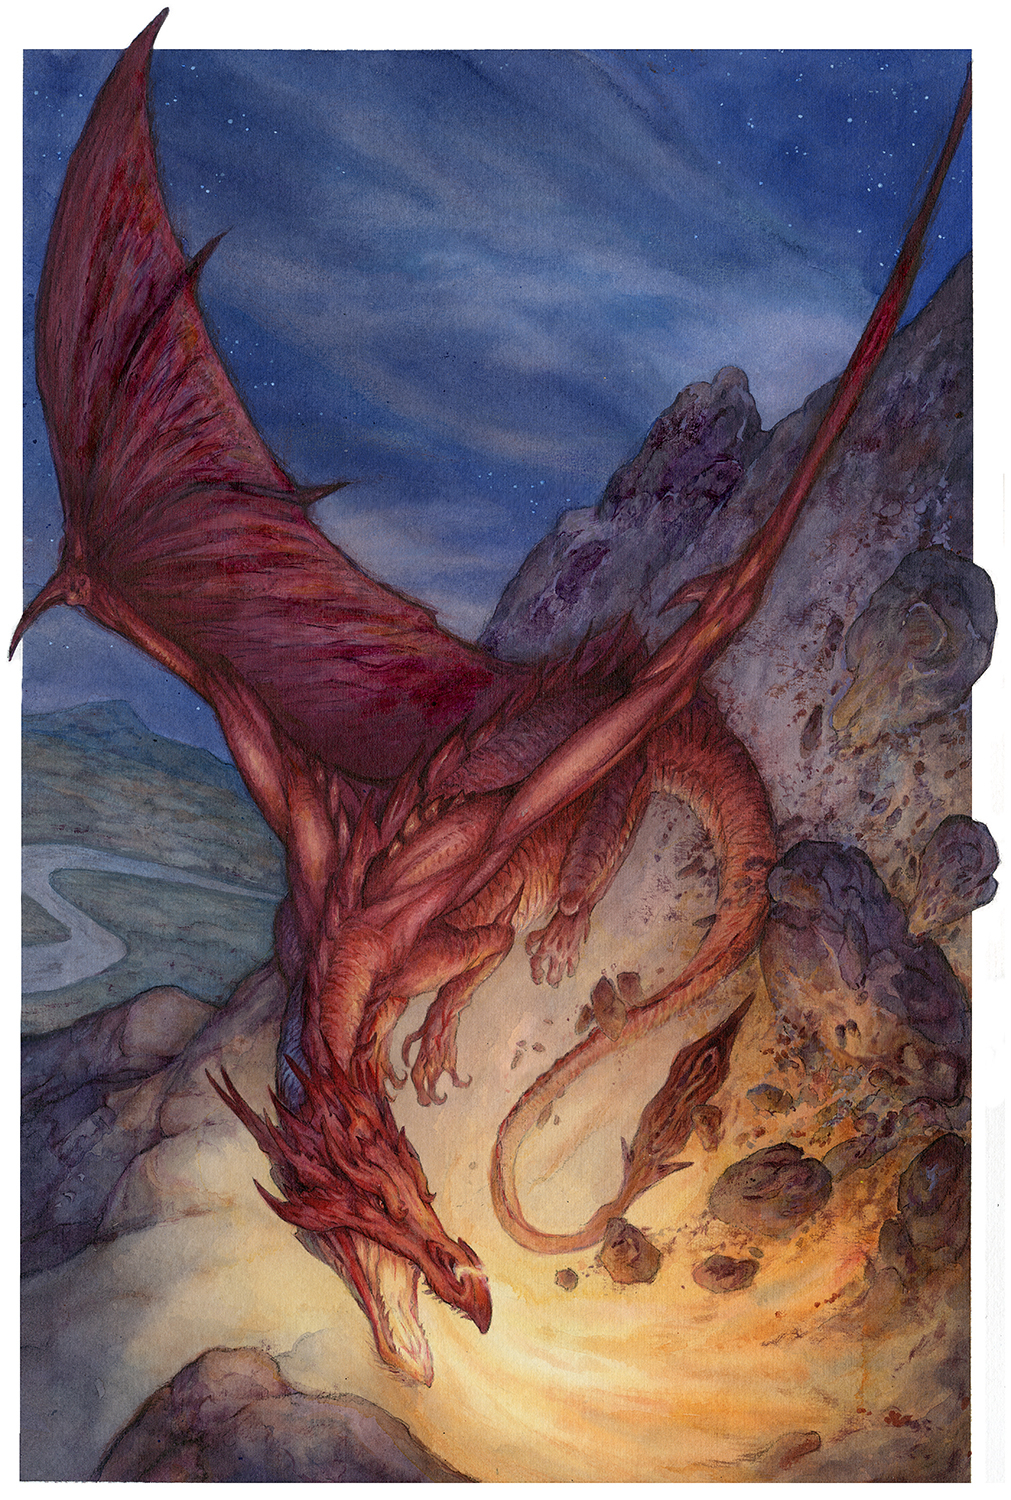 Smaug the Destroyer Artwork by David Wenzel